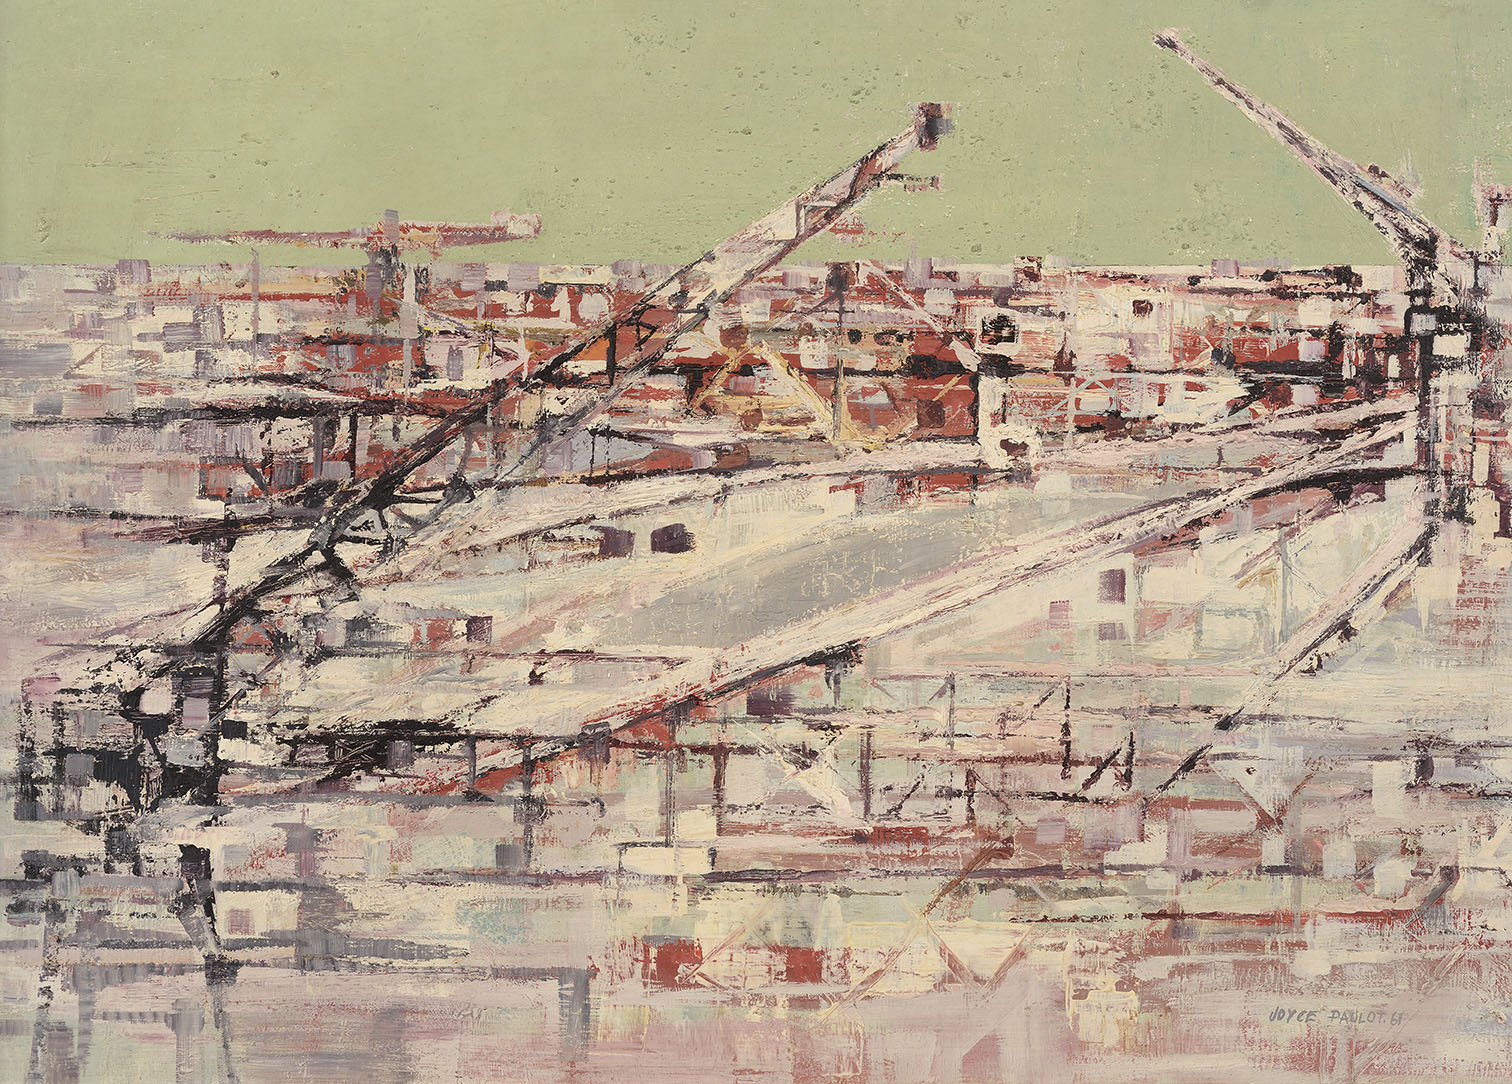 Joyce Pallot (1912-2004)  Building Site by River, 1961, Oil on board, 24 x 34 in, Signed and dated  [CAS 59]